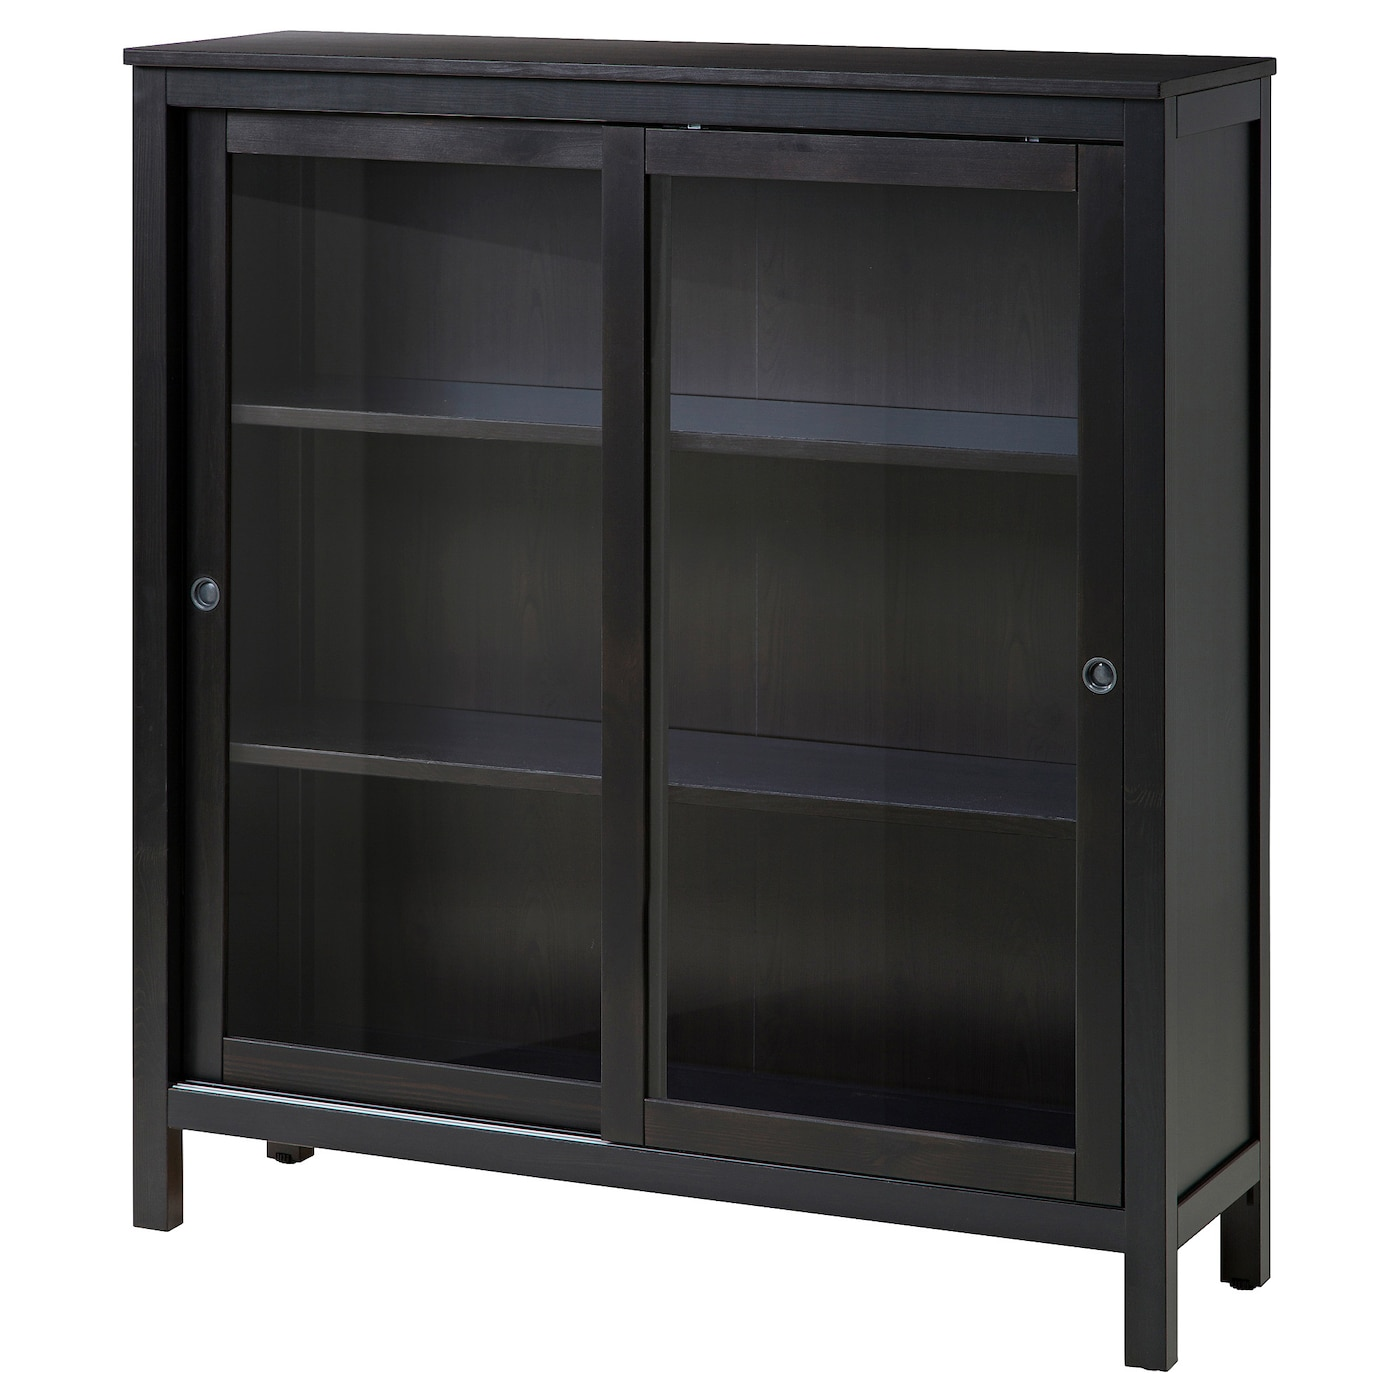 hemnes vitrine brun noir 120x130 cm ikea. Black Bedroom Furniture Sets. Home Design Ideas